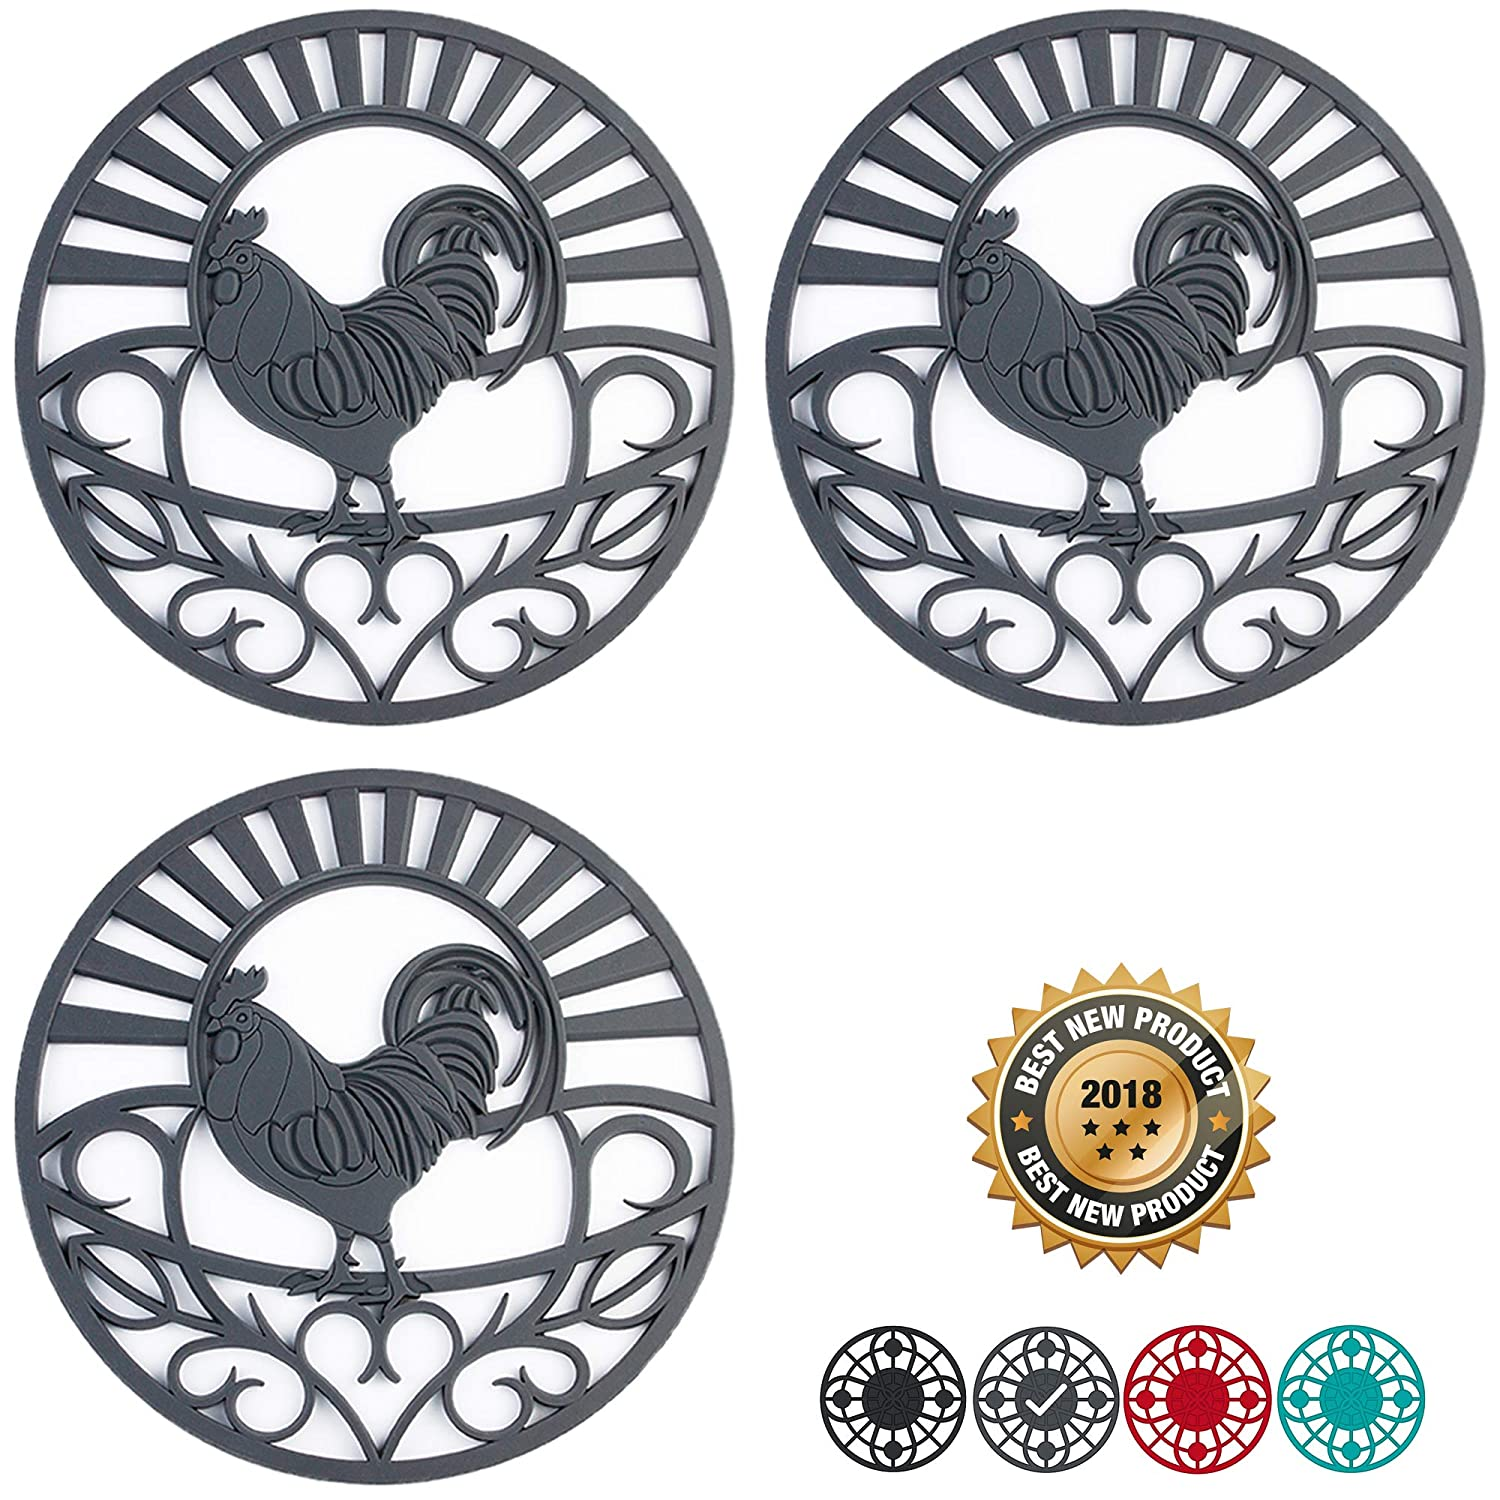 """Silicone Trivet Set For Hot Dishes   Modern Kitchen Hot Pads For Pots & Pans   Country Rooster Design (Symbol of Prosperity & Good Luck) Mimics Cast Iron Trivets   7.5"""" Round, Set of 3, Dark Gray"""